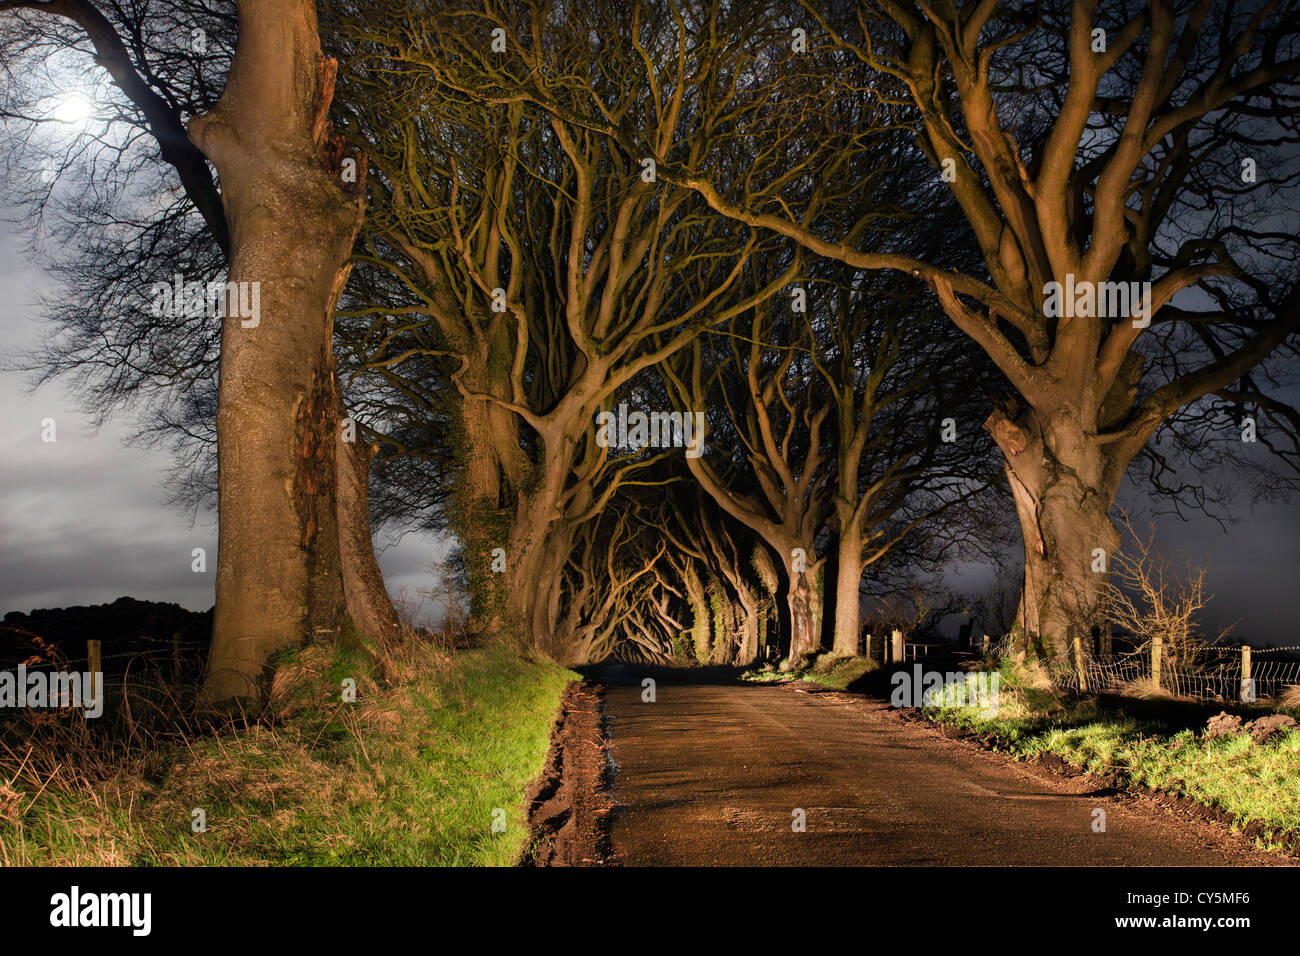 Dark hedges at night, full moon to left - Stock Image